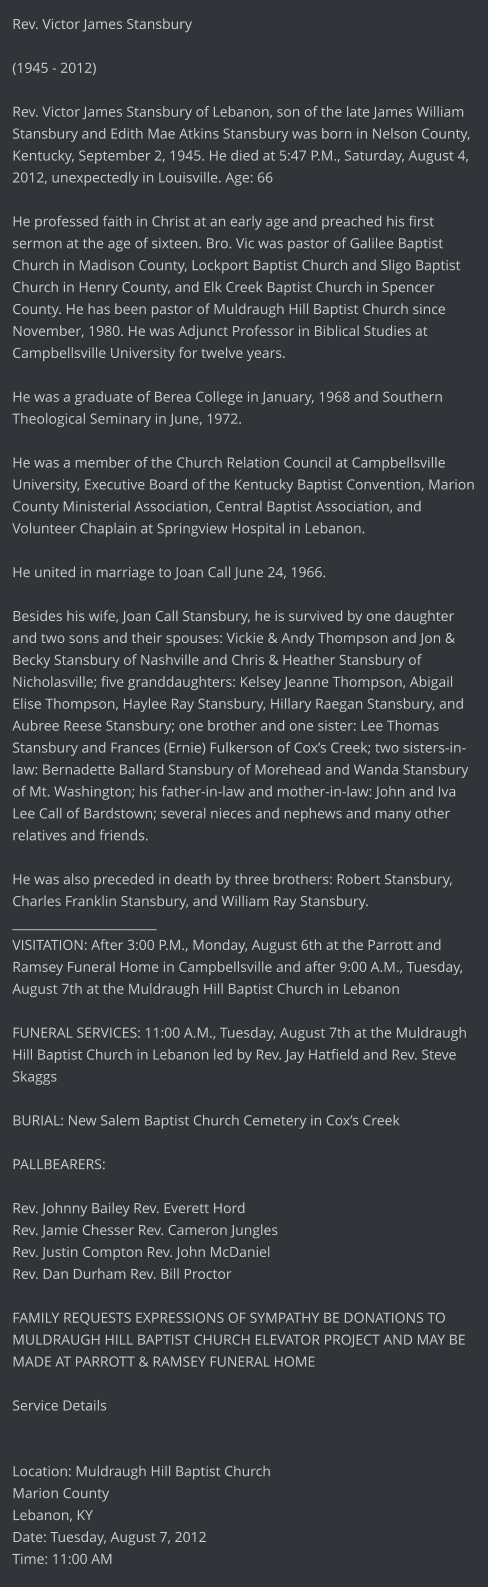 Rev. Victor James Stansbury  (1945 - 2012)  Rev. Victor James Stansbury of Lebanon, son of the late James William Stansbury and Edith Mae Atkins Stansbury was born in Nelson County, Kentucky, September 2, 1945. He died at 5:47 P.M., Saturday, August 4, 2012, unexpectedly in Louisville. Age: 66  He professed faith in Christ at an early age and preached his first sermon at the age of sixteen. Bro. Vic was pastor of Galilee Baptist Church in Madison County, Lockport Baptist Church and Sligo Baptist Church in Henry County, and Elk Creek Baptist Church in Spencer County. He has been pastor of Muldraugh Hill Baptist Church since November, 1980. He was Adjunct Professor in Biblical Studies at Campbellsville University for twelve years.  He was a graduate of Berea College in January, 1968 and Southern Theological Seminary in June, 1972.   He was a member of the Church Relation Council at Campbellsville University, Executive Board of the Kentucky Baptist Convention, Marion County Ministerial Association, Central Baptist Association, and Volunteer Chaplain at Springview Hospital in Lebanon.  He united in marriage to Joan Call June 24, 1966.   Besides his wife, Joan Call Stansbury, he is survived by one daughter and two sons and their spouses: Vickie & Andy Thompson and Jon & Becky Stansbury of Nashville and Chris & Heather Stansbury of Nicholasville; five granddaughters: Kelsey Jeanne Thompson, Abigail Elise Thompson, Haylee Ray Stansbury, Hillary Raegan Stansbury, and Aubree Reese Stansbury; one brother and one sister: Lee Thomas Stansbury and Frances (Ernie) Fulkerson of Cox's Creek; two sisters-in-law: Bernadette Ballard Stansbury of Morehead and Wanda Stansbury of Mt. Washington; his father-in-law and mother-in-law: John and Iva Lee Call of Bardstown; several nieces and nephews and many other relatives and friends.  He was also preceded in death by three brothers: Robert Stansbury, Charles Franklin Stansbury, and William Ray Stansbury. _______________________ VISITATION: After 3:00 P.M., Monday, August 6th at the Parrott and Ramsey Funeral Home in Campbellsville and after 9:00 A.M., Tuesday, August 7th at the Muldraugh Hill Baptist Church in Lebanon  FUNERAL SERVICES: 11:00 A.M., Tuesday, August 7th at the Muldraugh Hill Baptist Church in Lebanon led by Rev. Jay Hatfield and Rev. Steve Skaggs   BURIAL: New Salem Baptist Church Cemetery in Cox's Creek  PALLBEARERS:   Rev. Johnny Bailey Rev. Everett Hord Rev. Jamie Chesser Rev. Cameron Jungles Rev. Justin Compton Rev. John McDaniel  Rev. Dan Durham Rev. Bill Proctor  FAMILY REQUESTS EXPRESSIONS OF SYMPATHY BE DONATIONS TO MULDRAUGH HILL BAPTIST CHURCH ELEVATOR PROJECT AND MAY BE MADE AT PARROTT & RAMSEY FUNERAL HOME  Service Details   Location: Muldraugh Hill Baptist Church Marion County Lebanon, KY  Date: Tuesday, August 7, 2012 Time: 11:00 AM